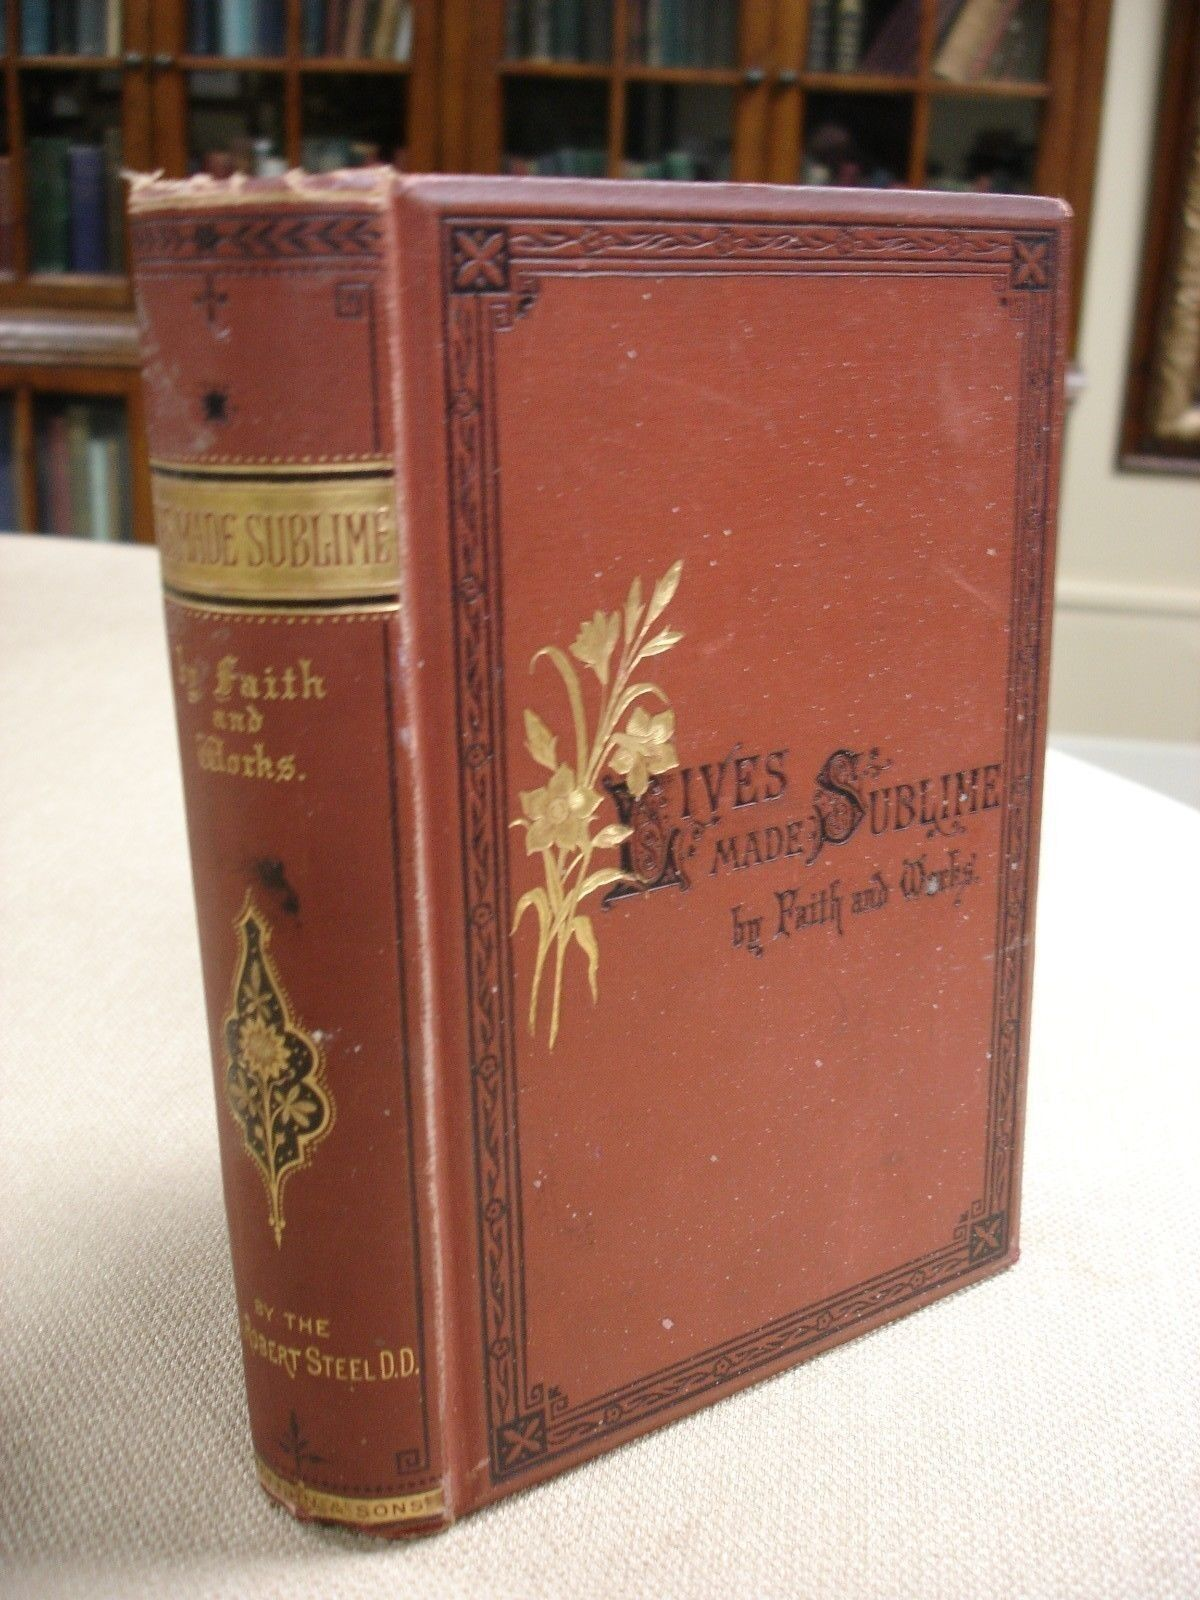 Lives Made Sublime by Faith and Works with Ornate page to John. A. Lemon